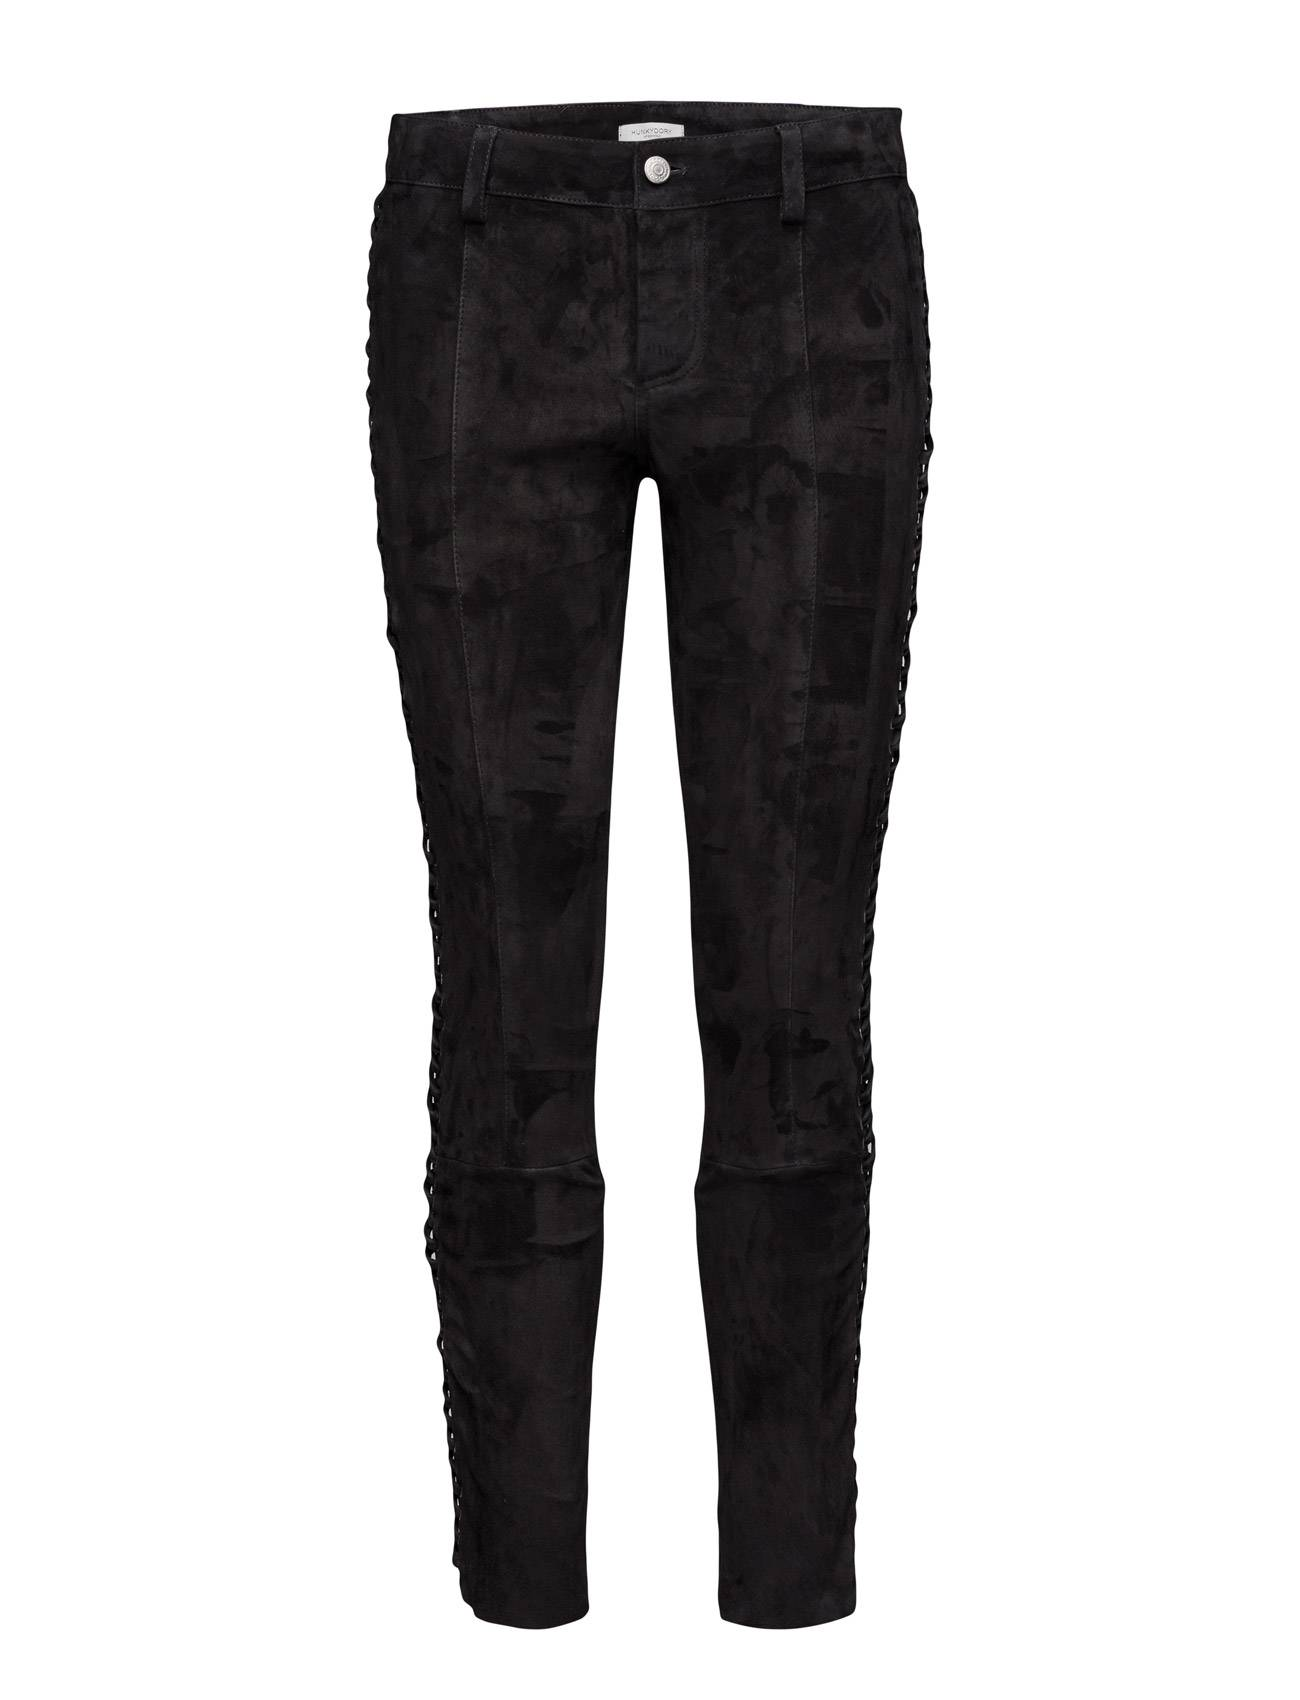 Hunkydory Suede Slims